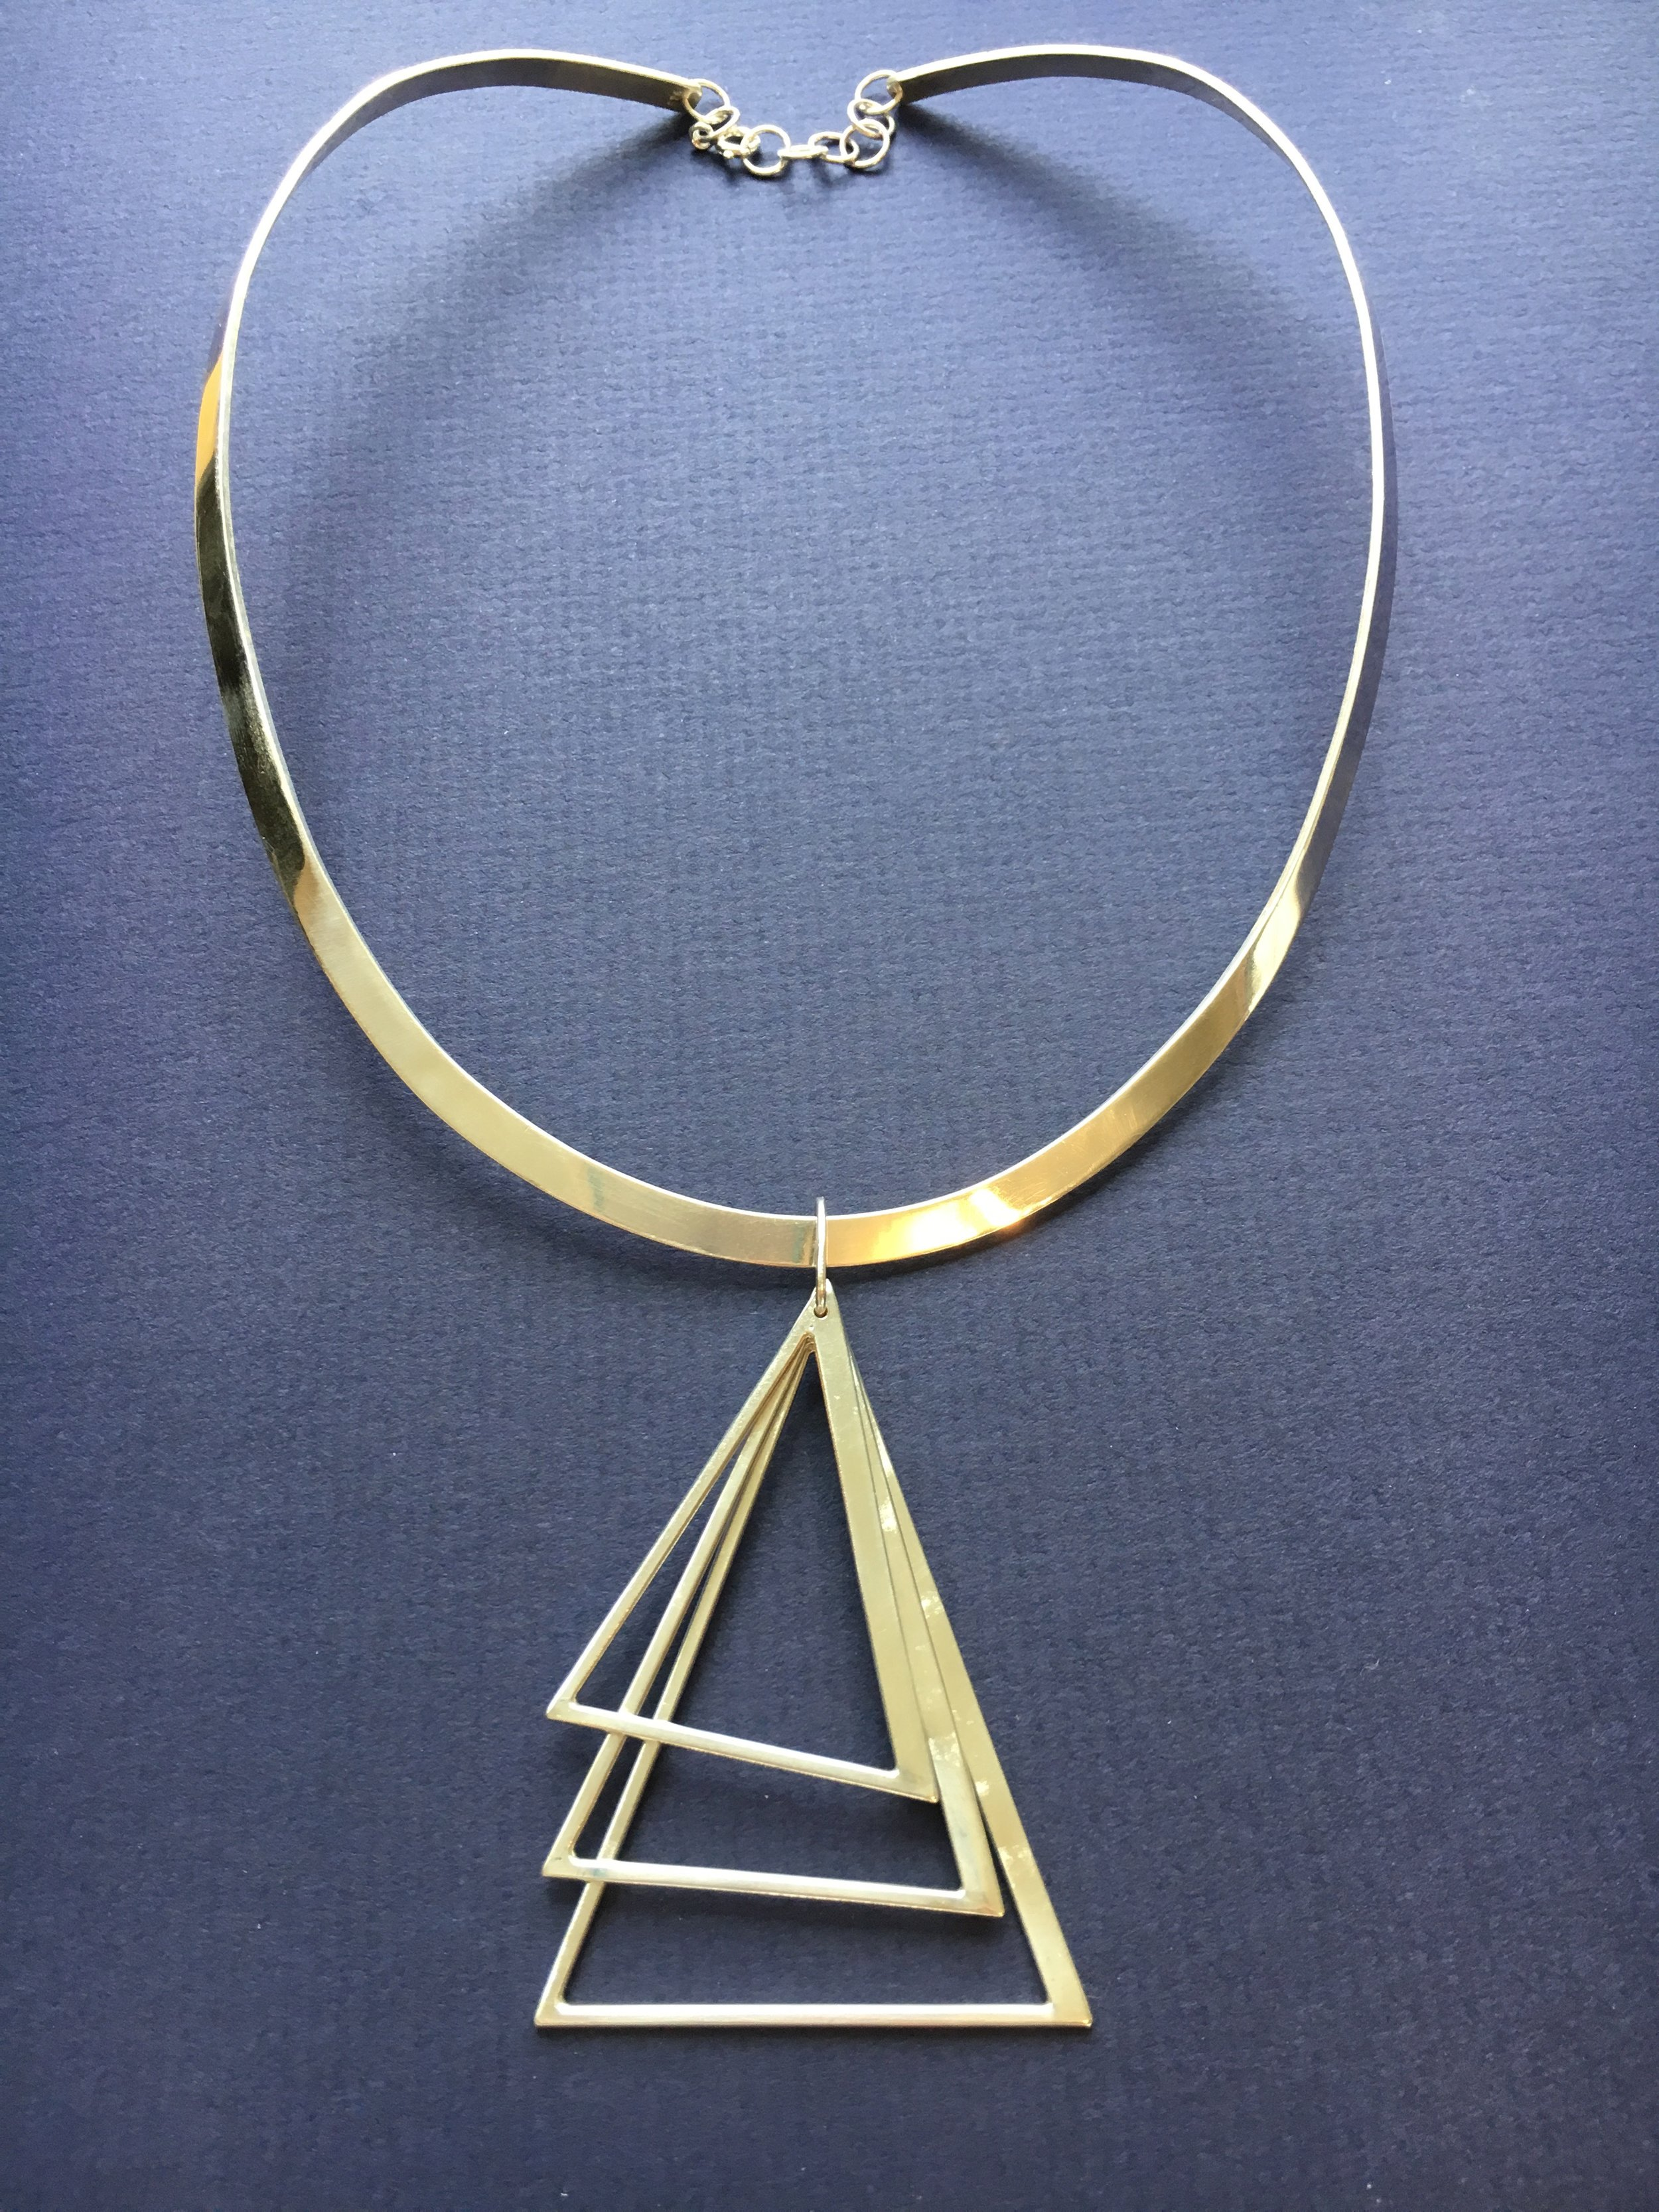 Fabricated Custom Tri-Delta Necklace in Sterling Silver